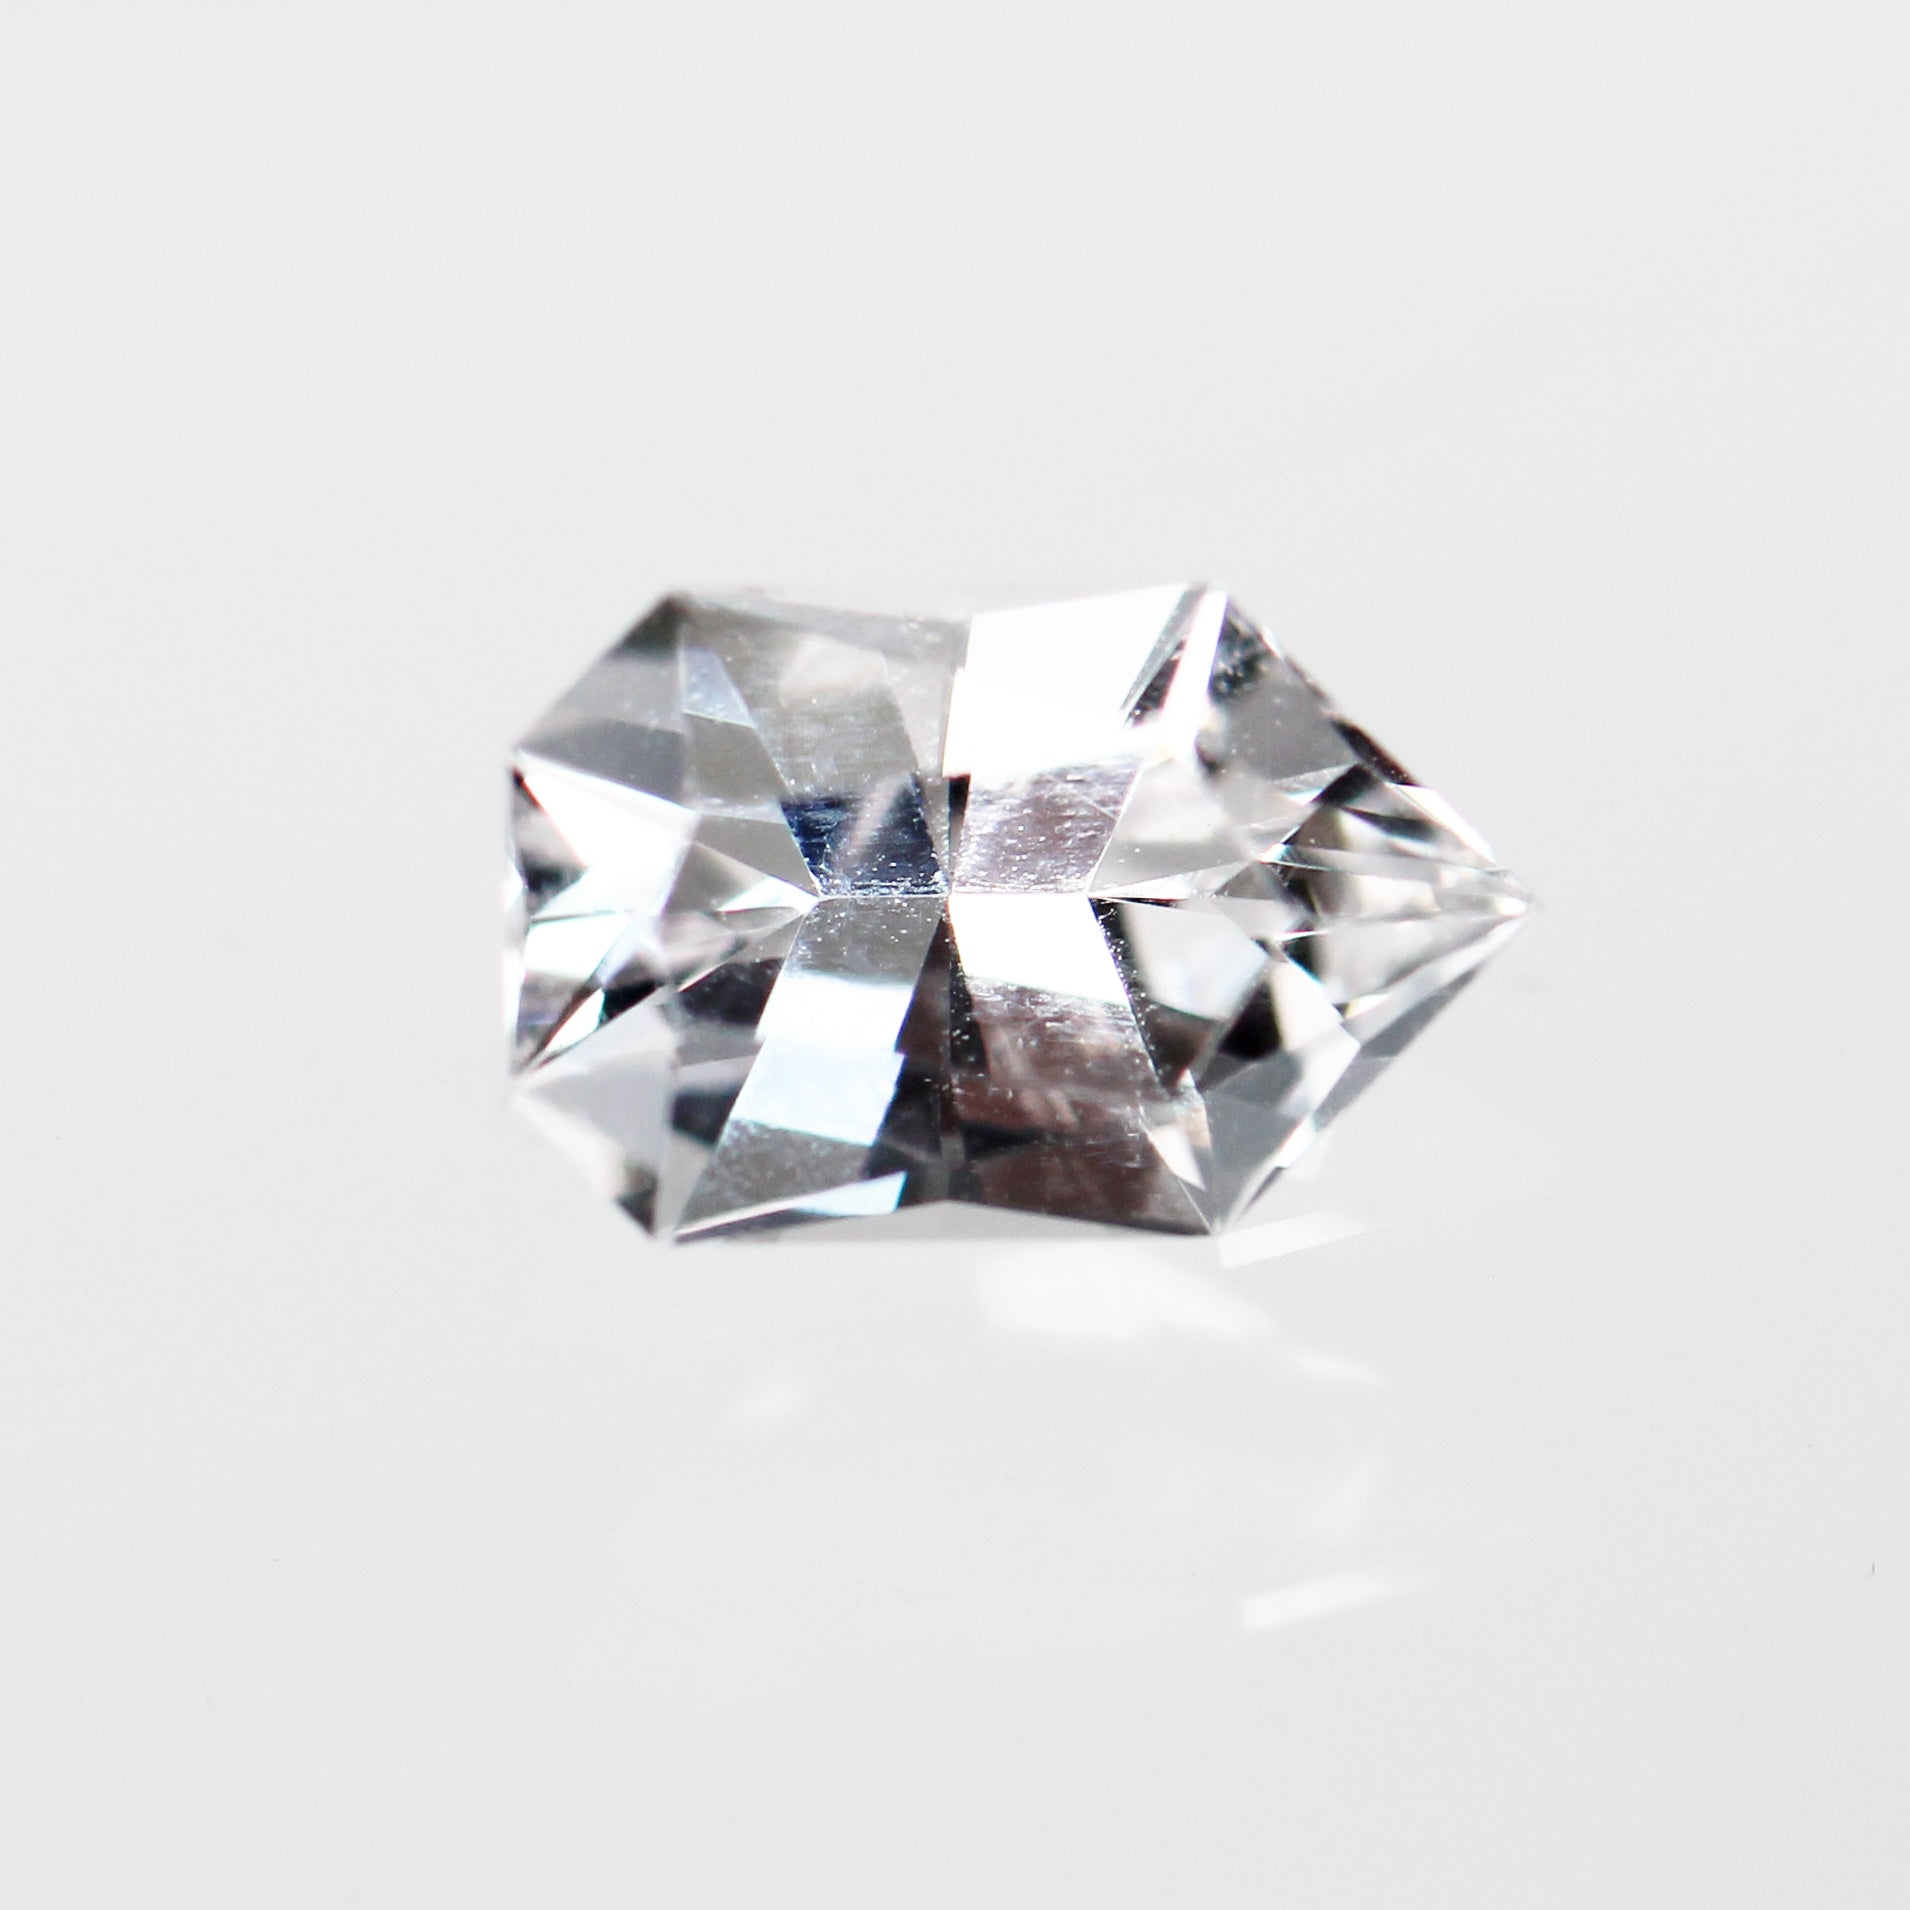 1.44 Carat Geometric Danburite for Custom Work - Inventory Code GBDAN144 - Salt & Pepper Celestial Diamond Engagement Rings and Wedding Bands  by Midwinter Co.